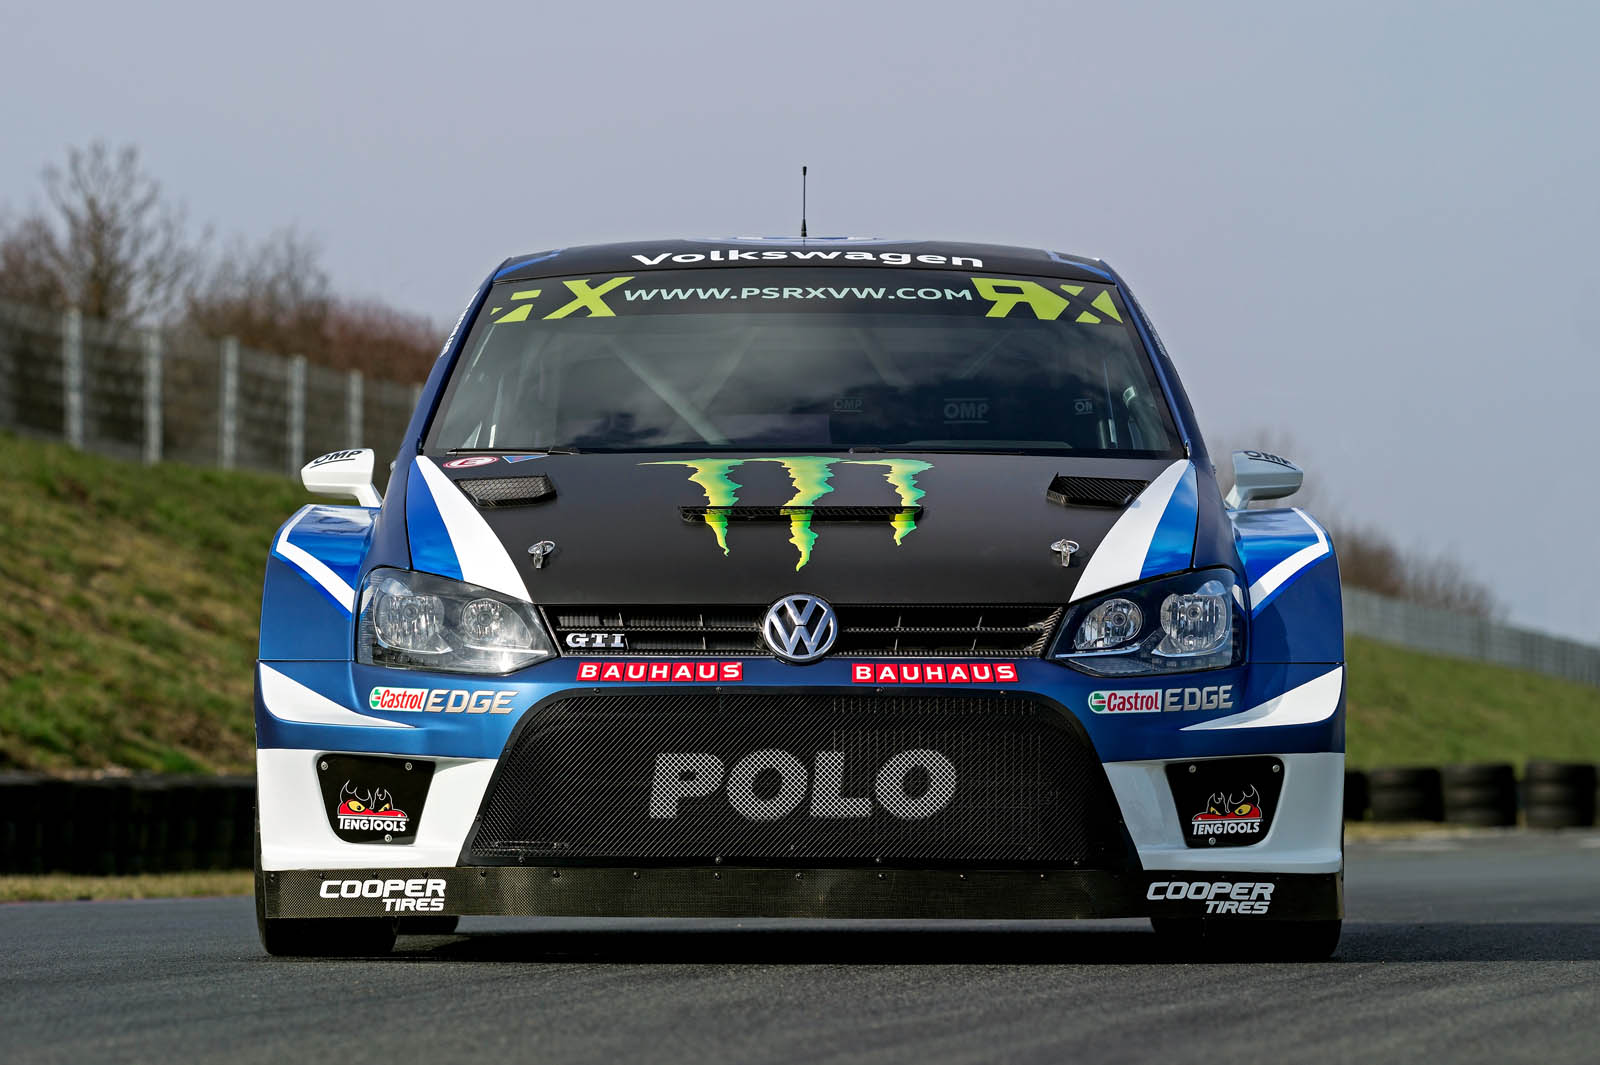 vw polo rally car reborn as petter solberg 39 s new 570 horspower gti rx supercar w video carscoops. Black Bedroom Furniture Sets. Home Design Ideas